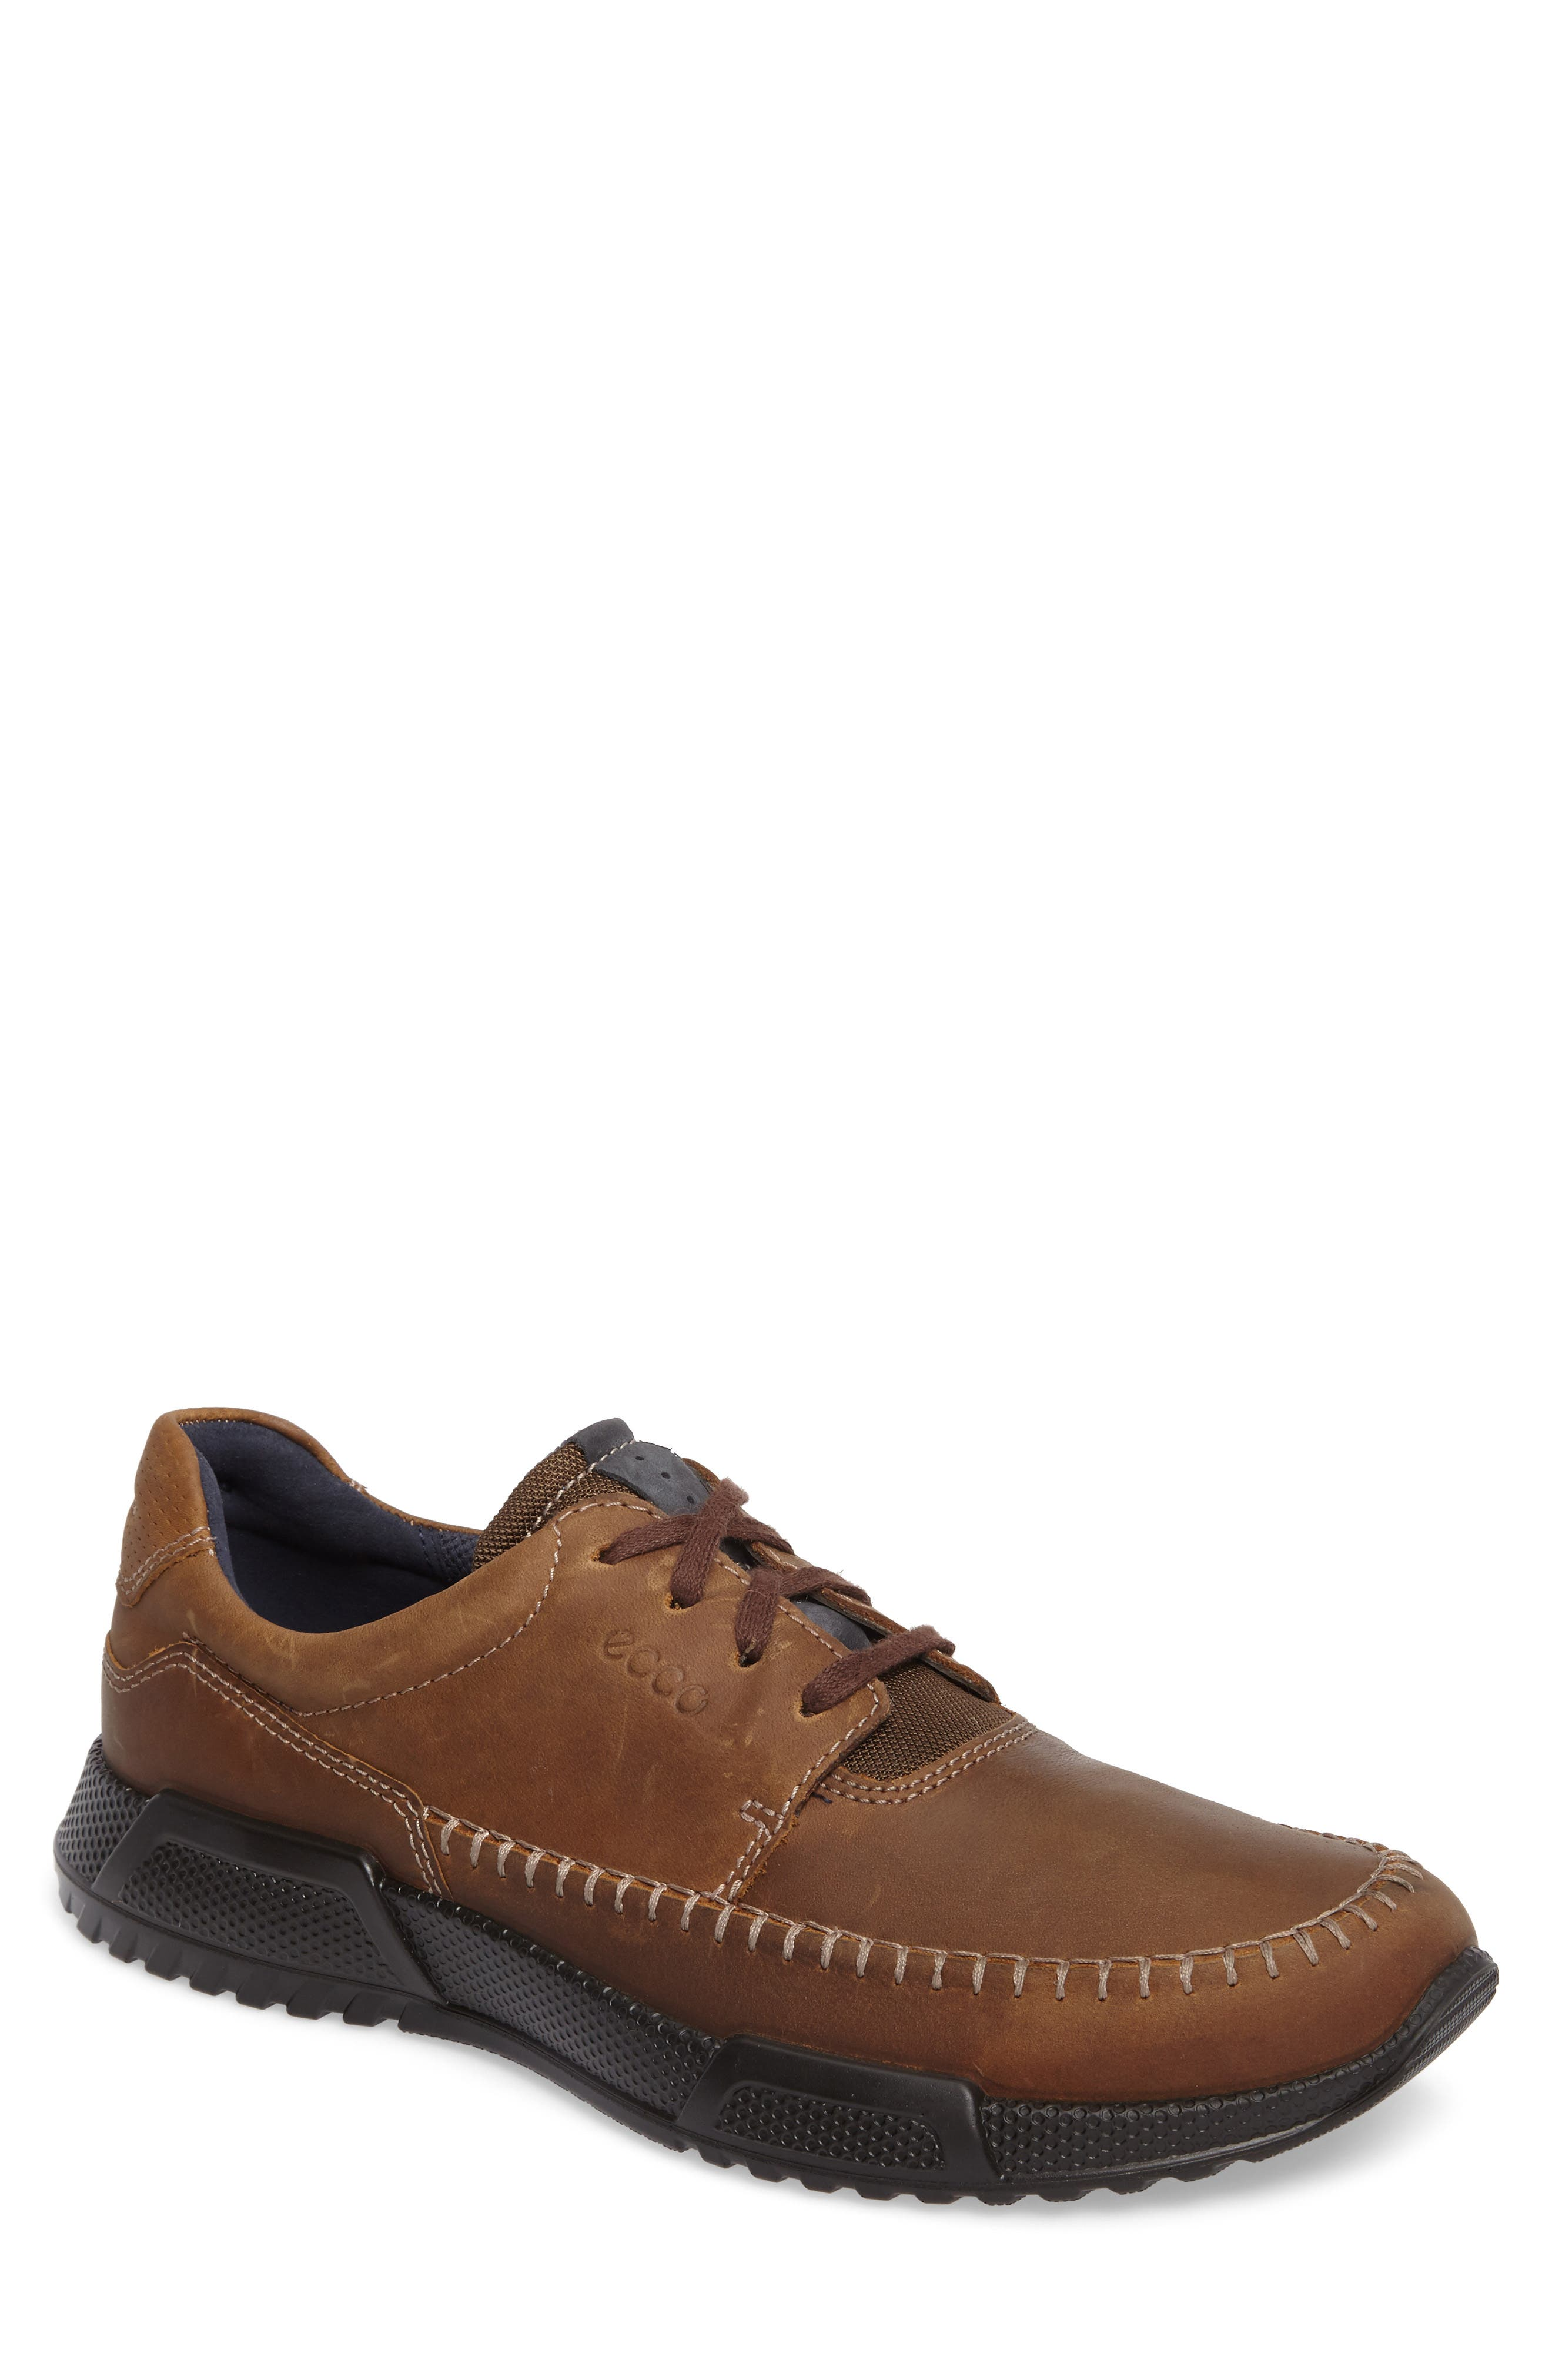 Main Image - ECCO Luca Moc Toe Oxford (Men)